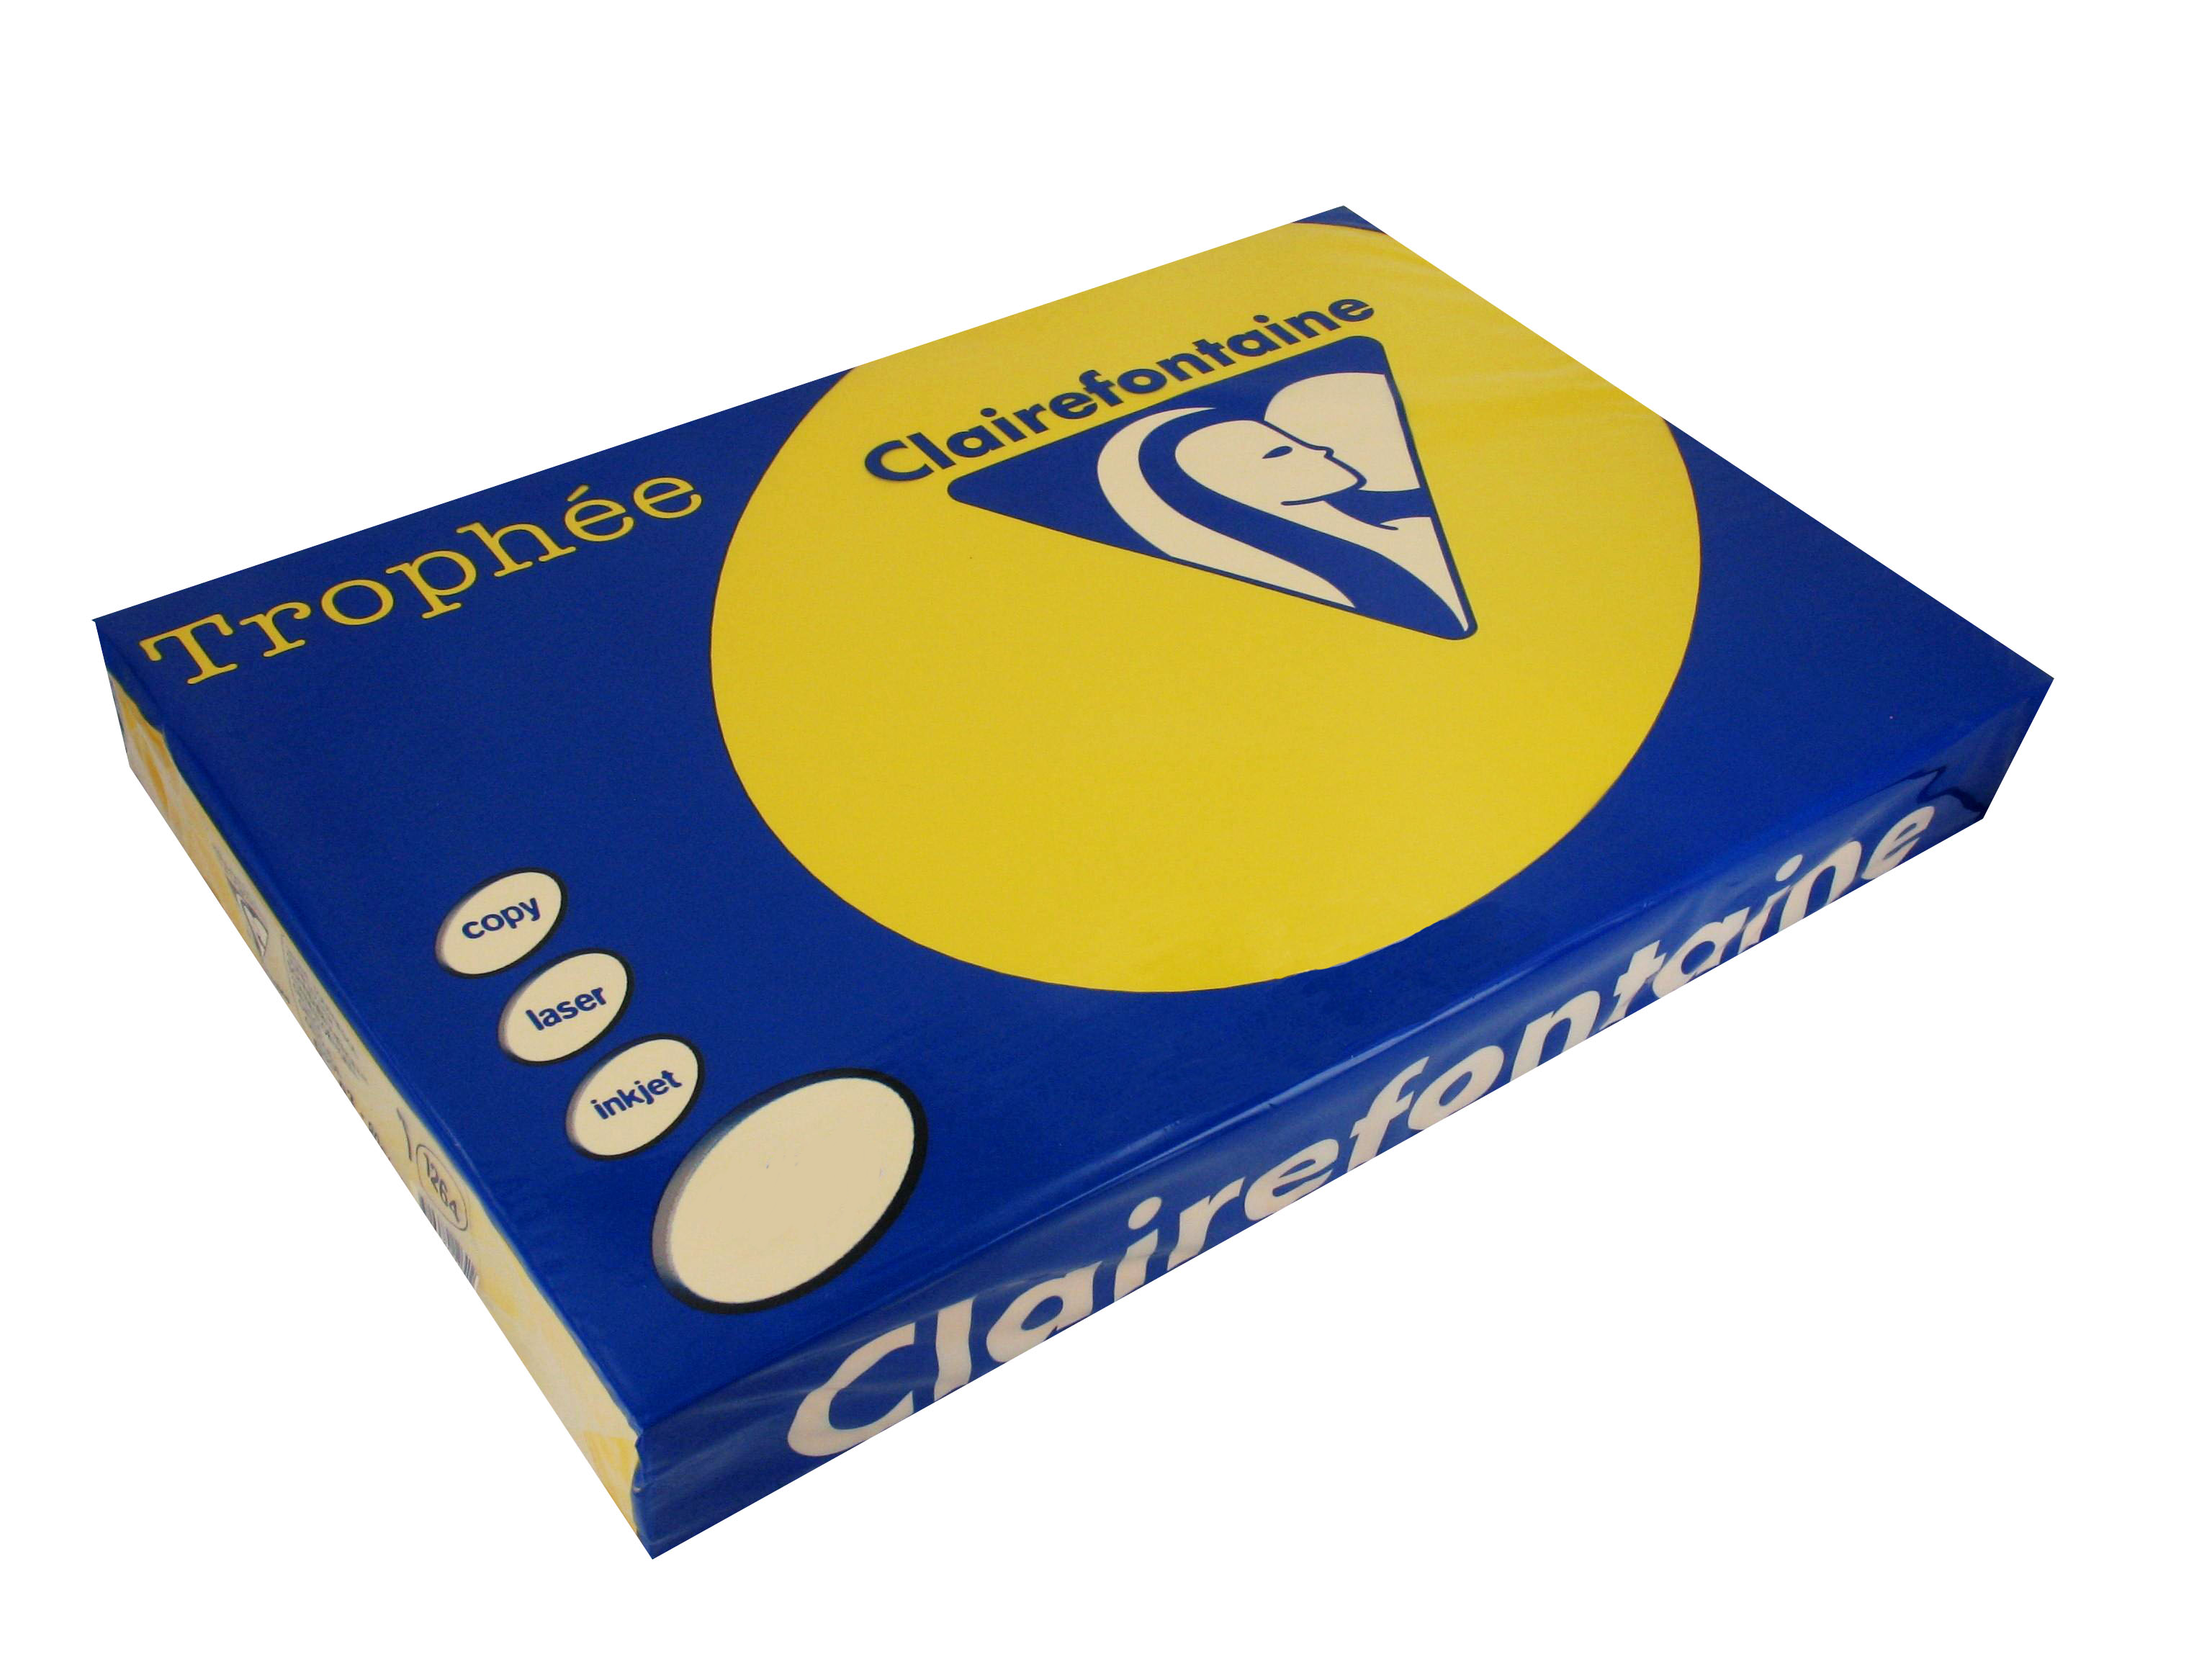 Clairefontaine Trophee Color Ocker 80g/m² DIN-A4 - 500 Blatt